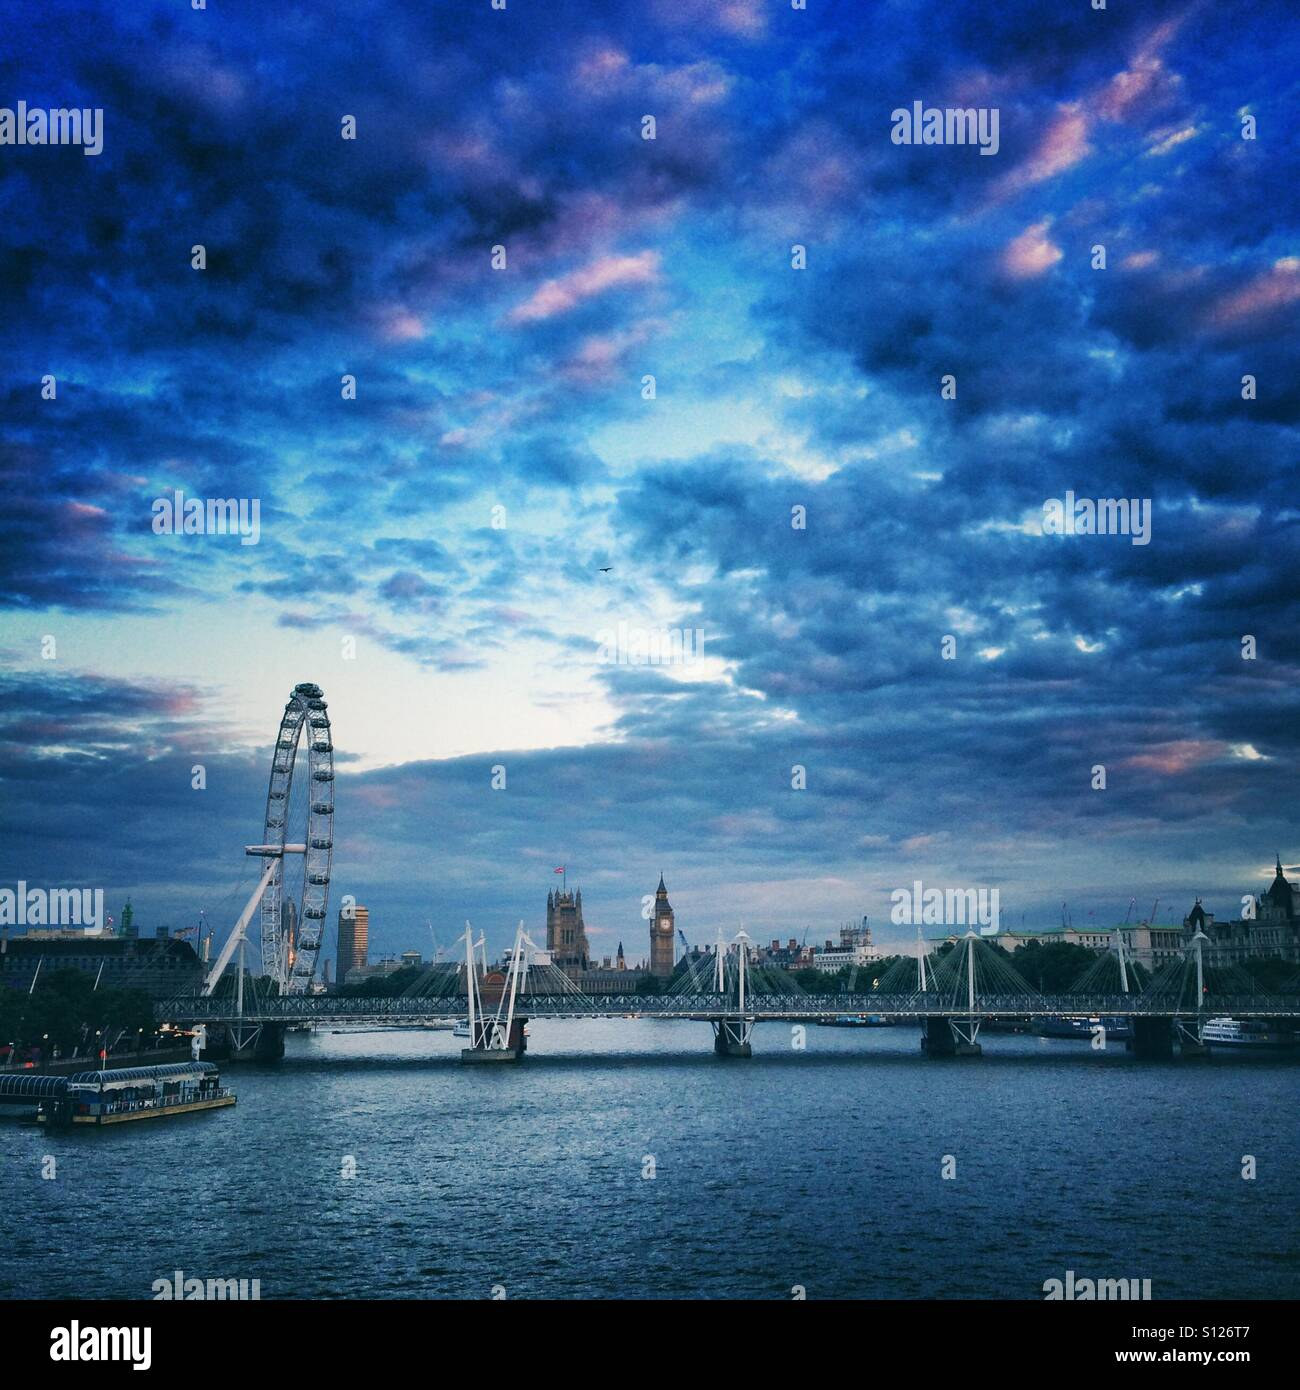 View of the Houses of Parliament and The London Eye from the Thames river, London - Stock Image